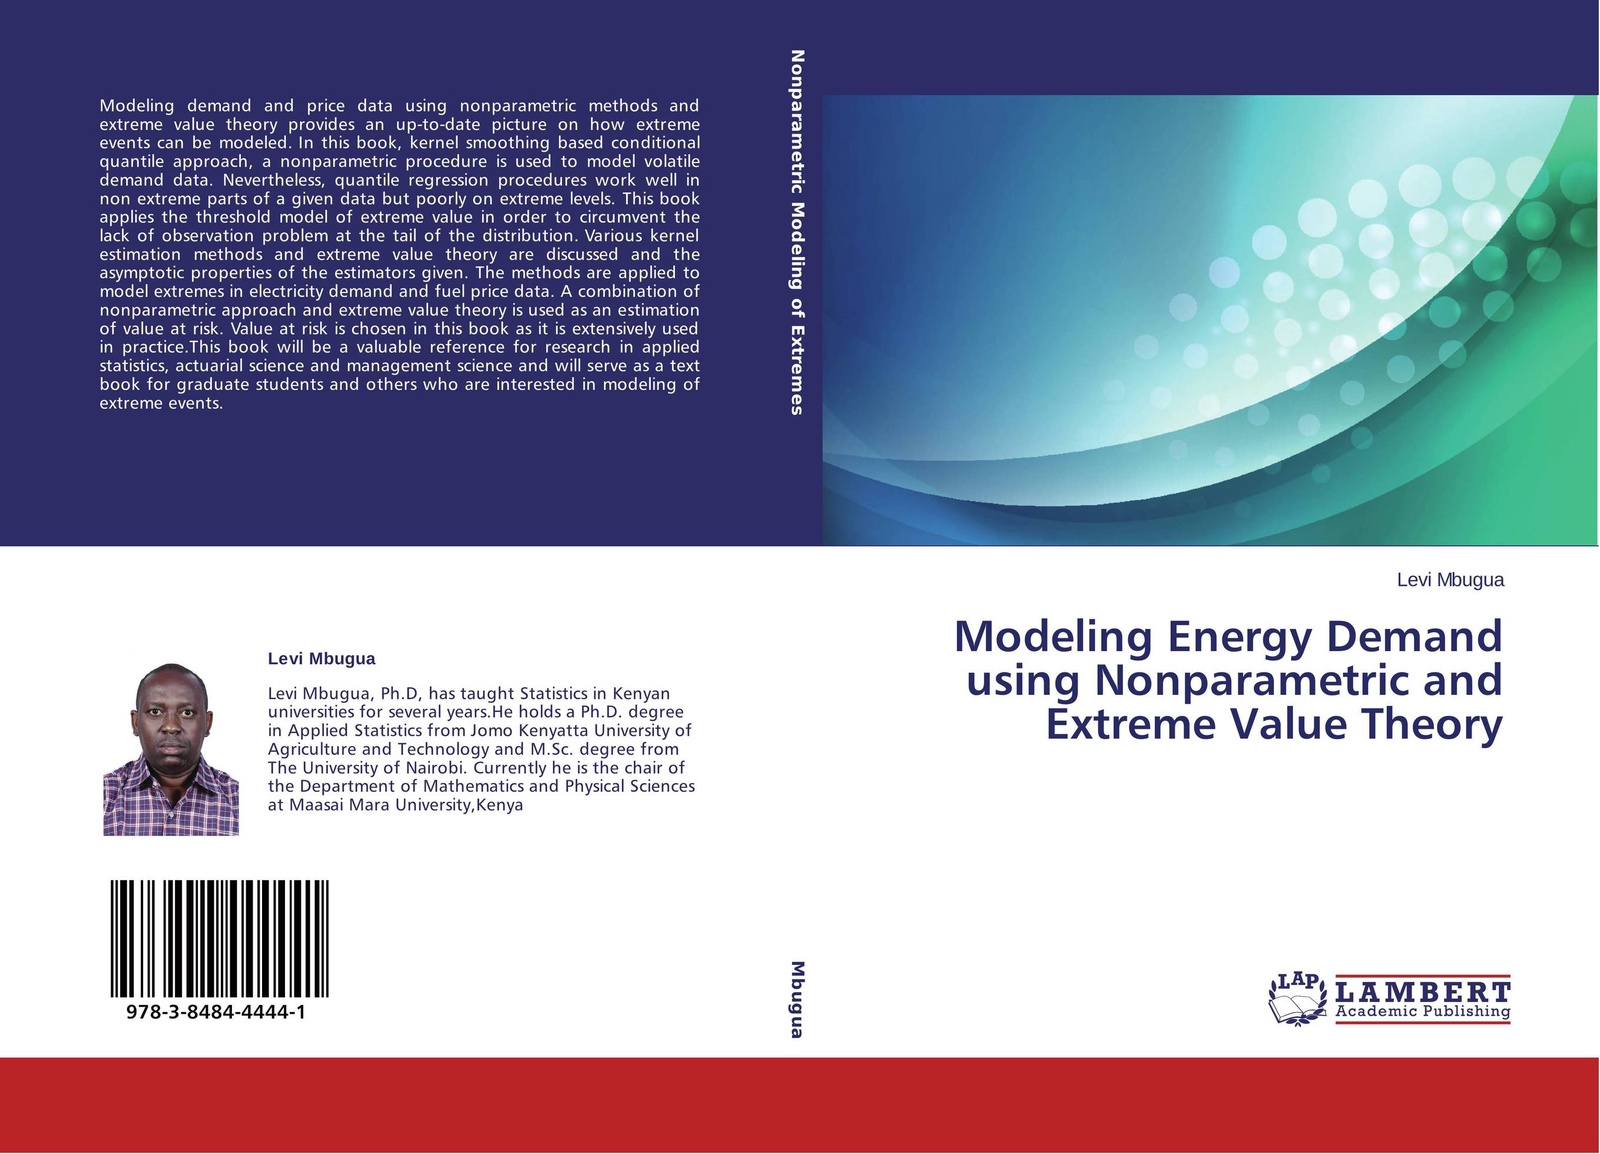 Levi Mbugua Modeling Energy Demand using Nonparametric and Extreme Value Theory francois longin extreme events in finance a handbook of extreme value theory and its applications